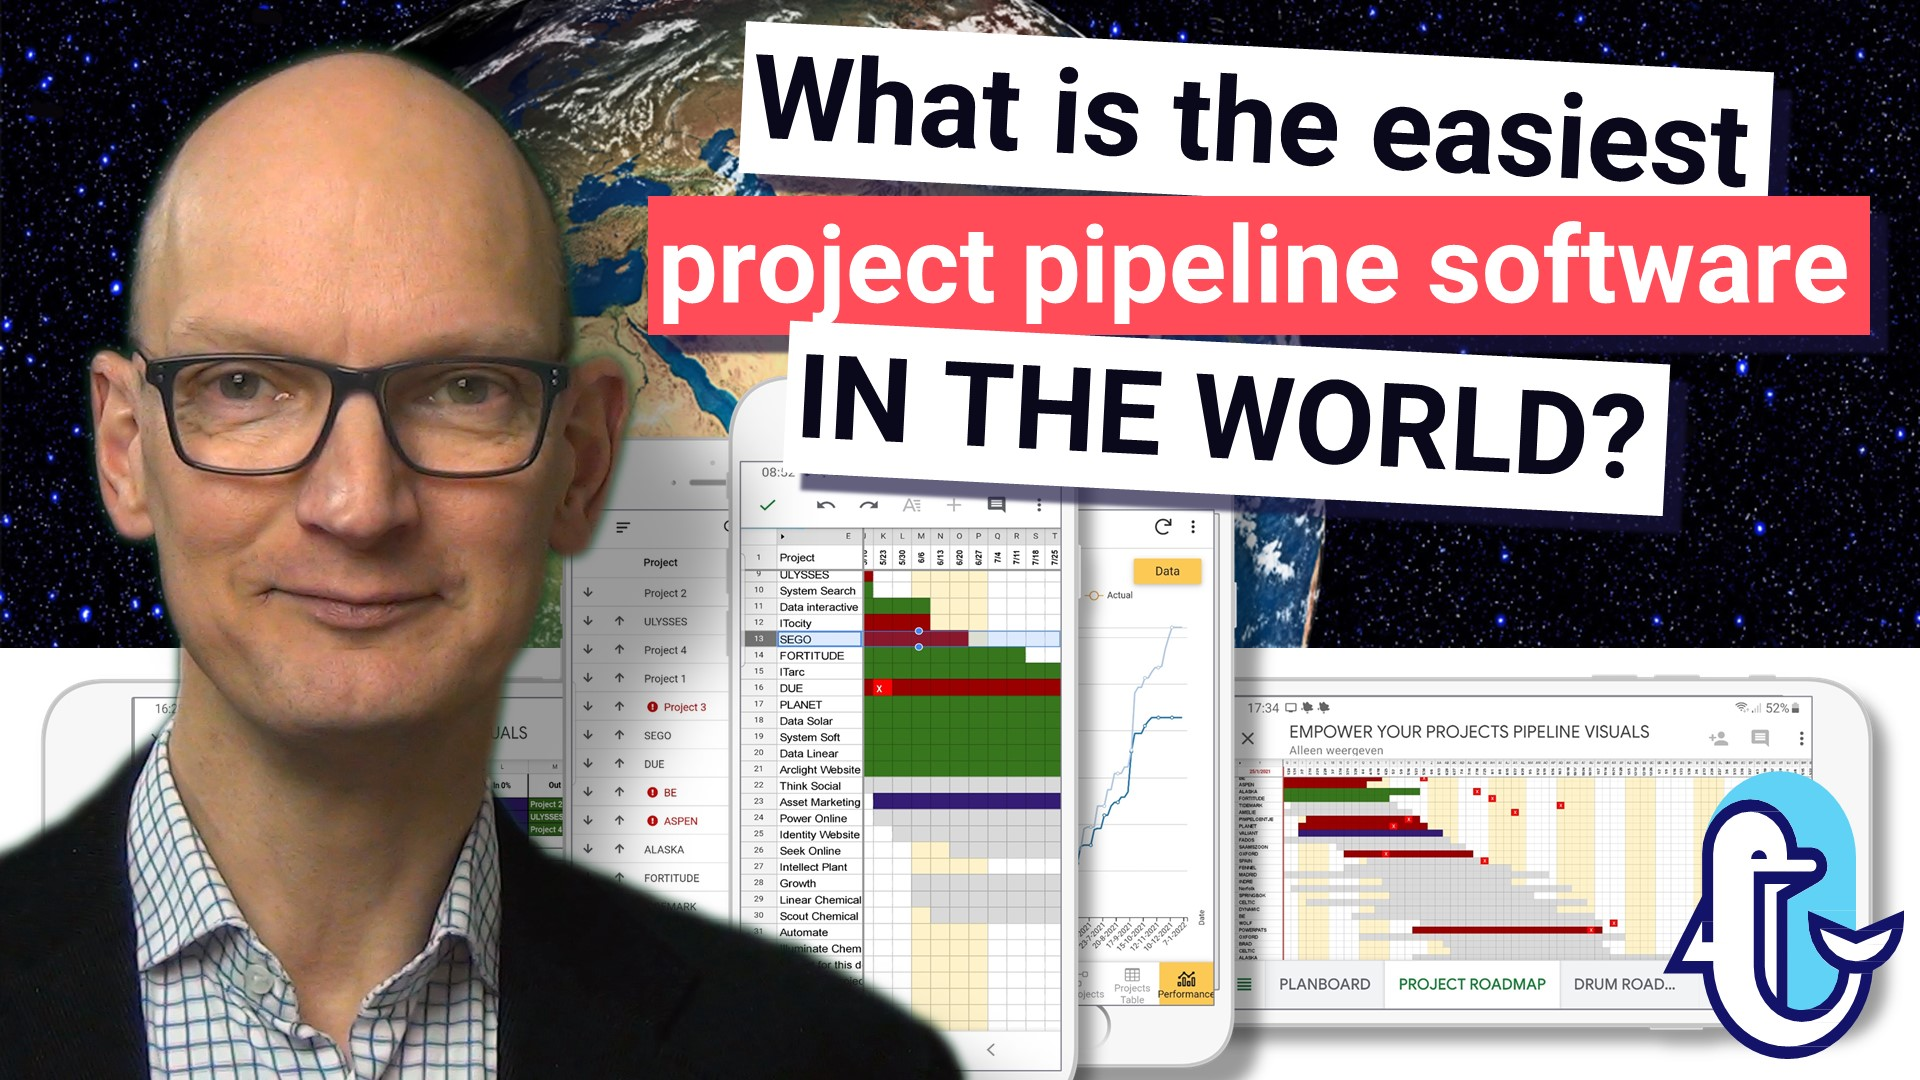 What is the easiest project pipeline software in the world?